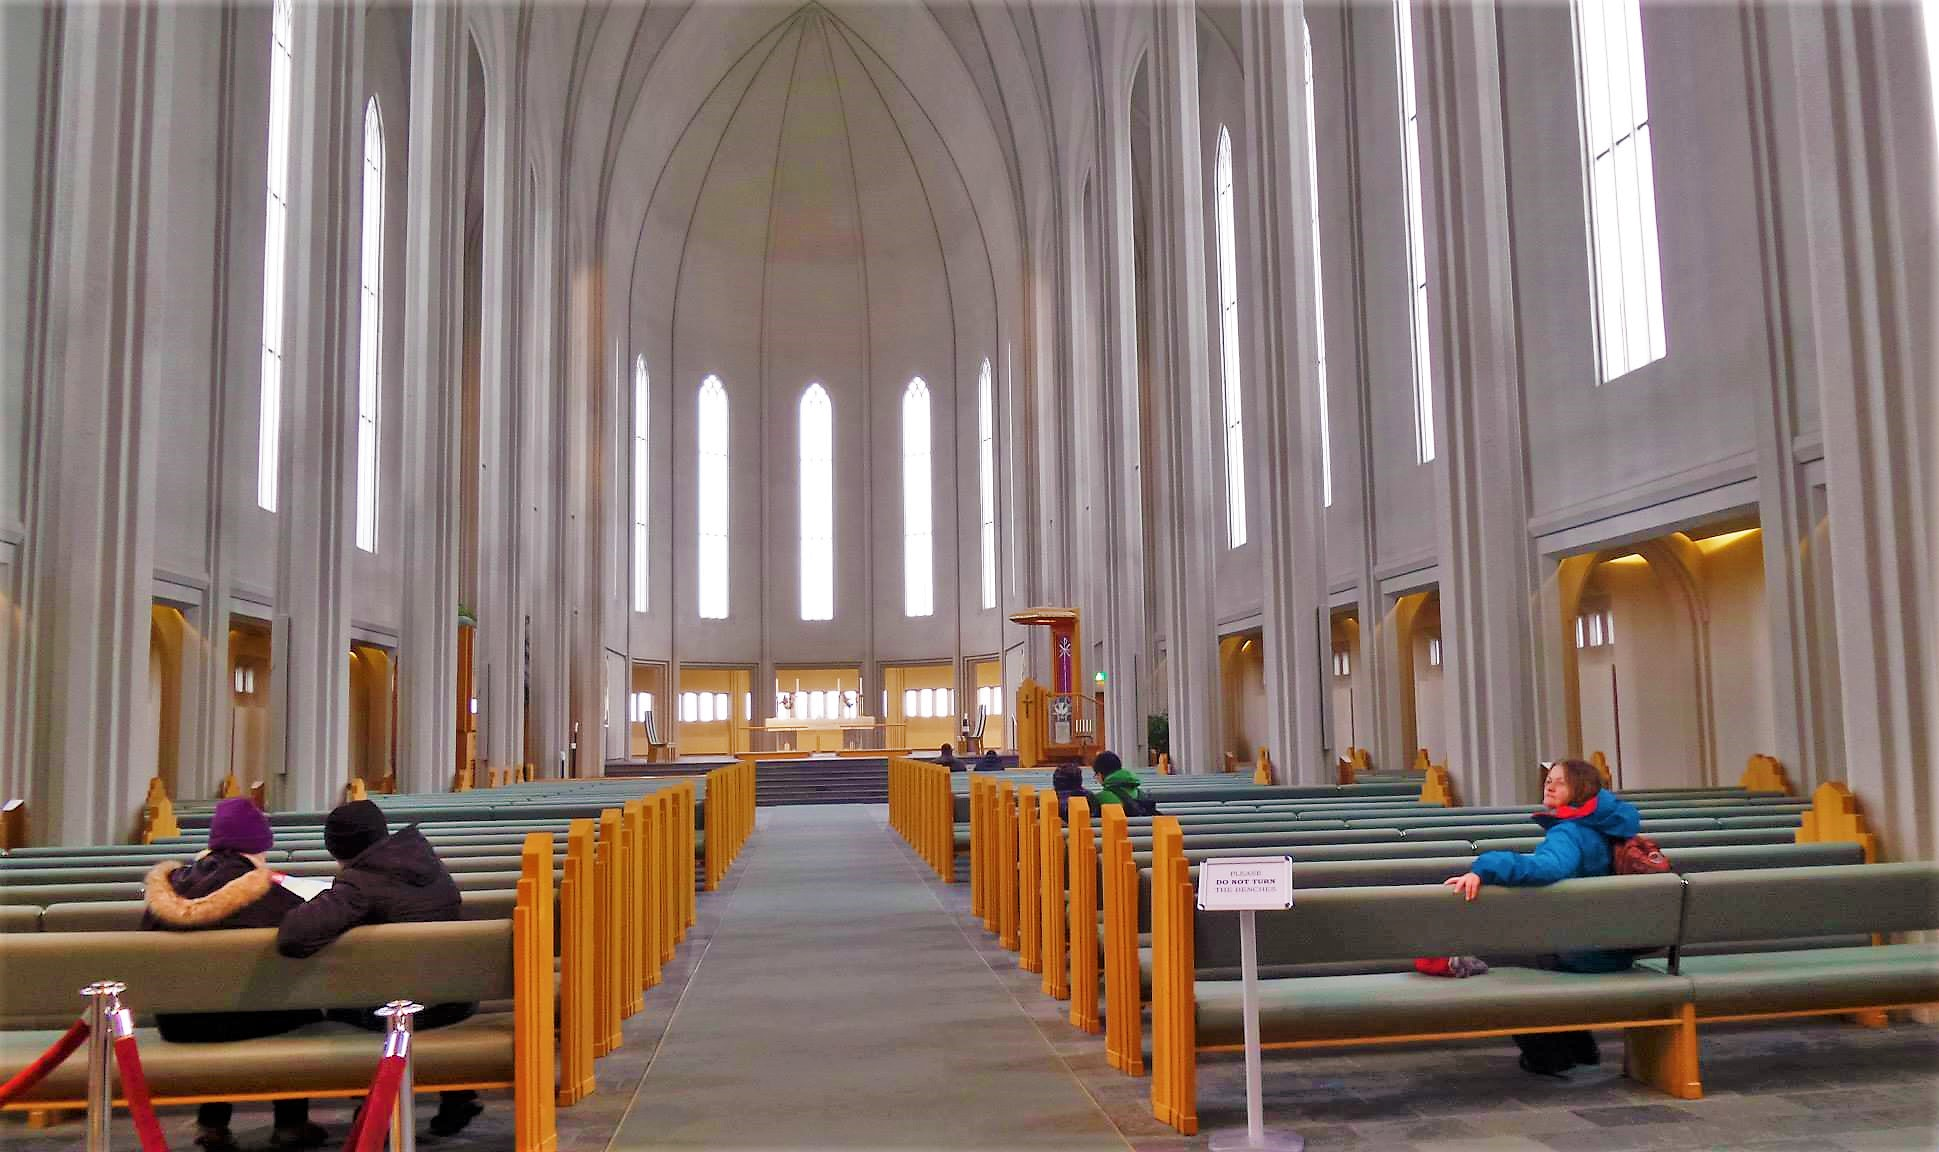 Inside the Hallgrimskirkja Church in Reykjavik, Iceland